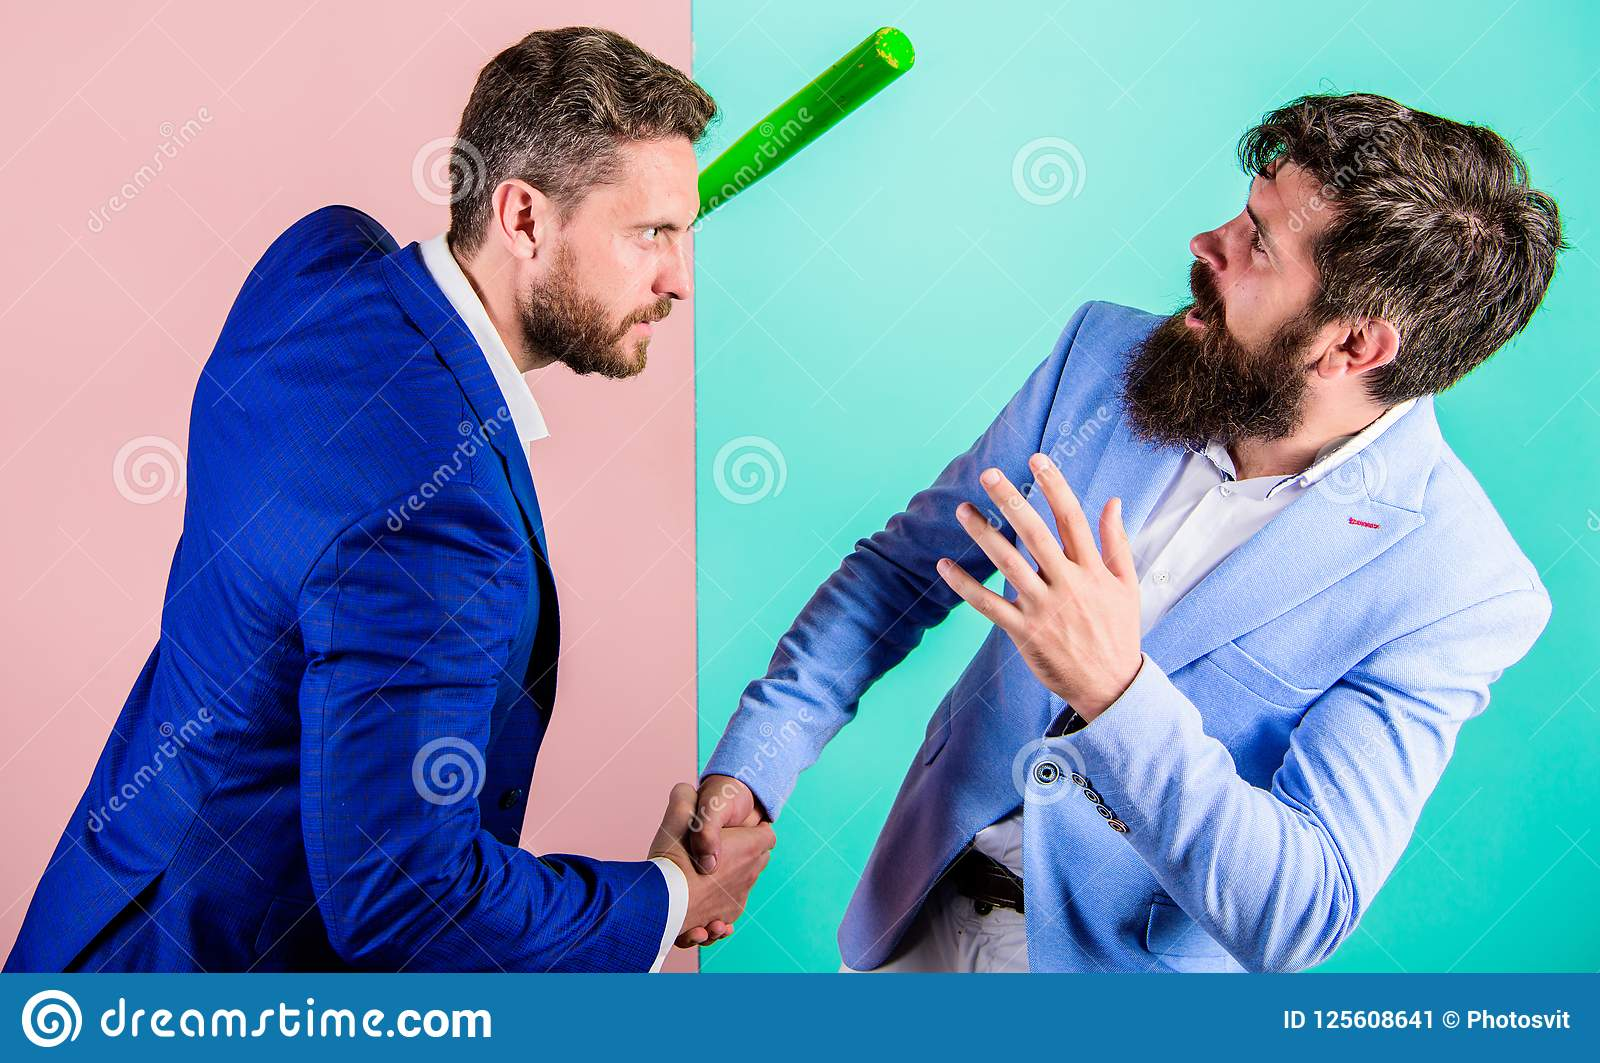 Hidden threat concept. Business partners competitors office colleagues shaking hands. Tricky first impression. Dangerous